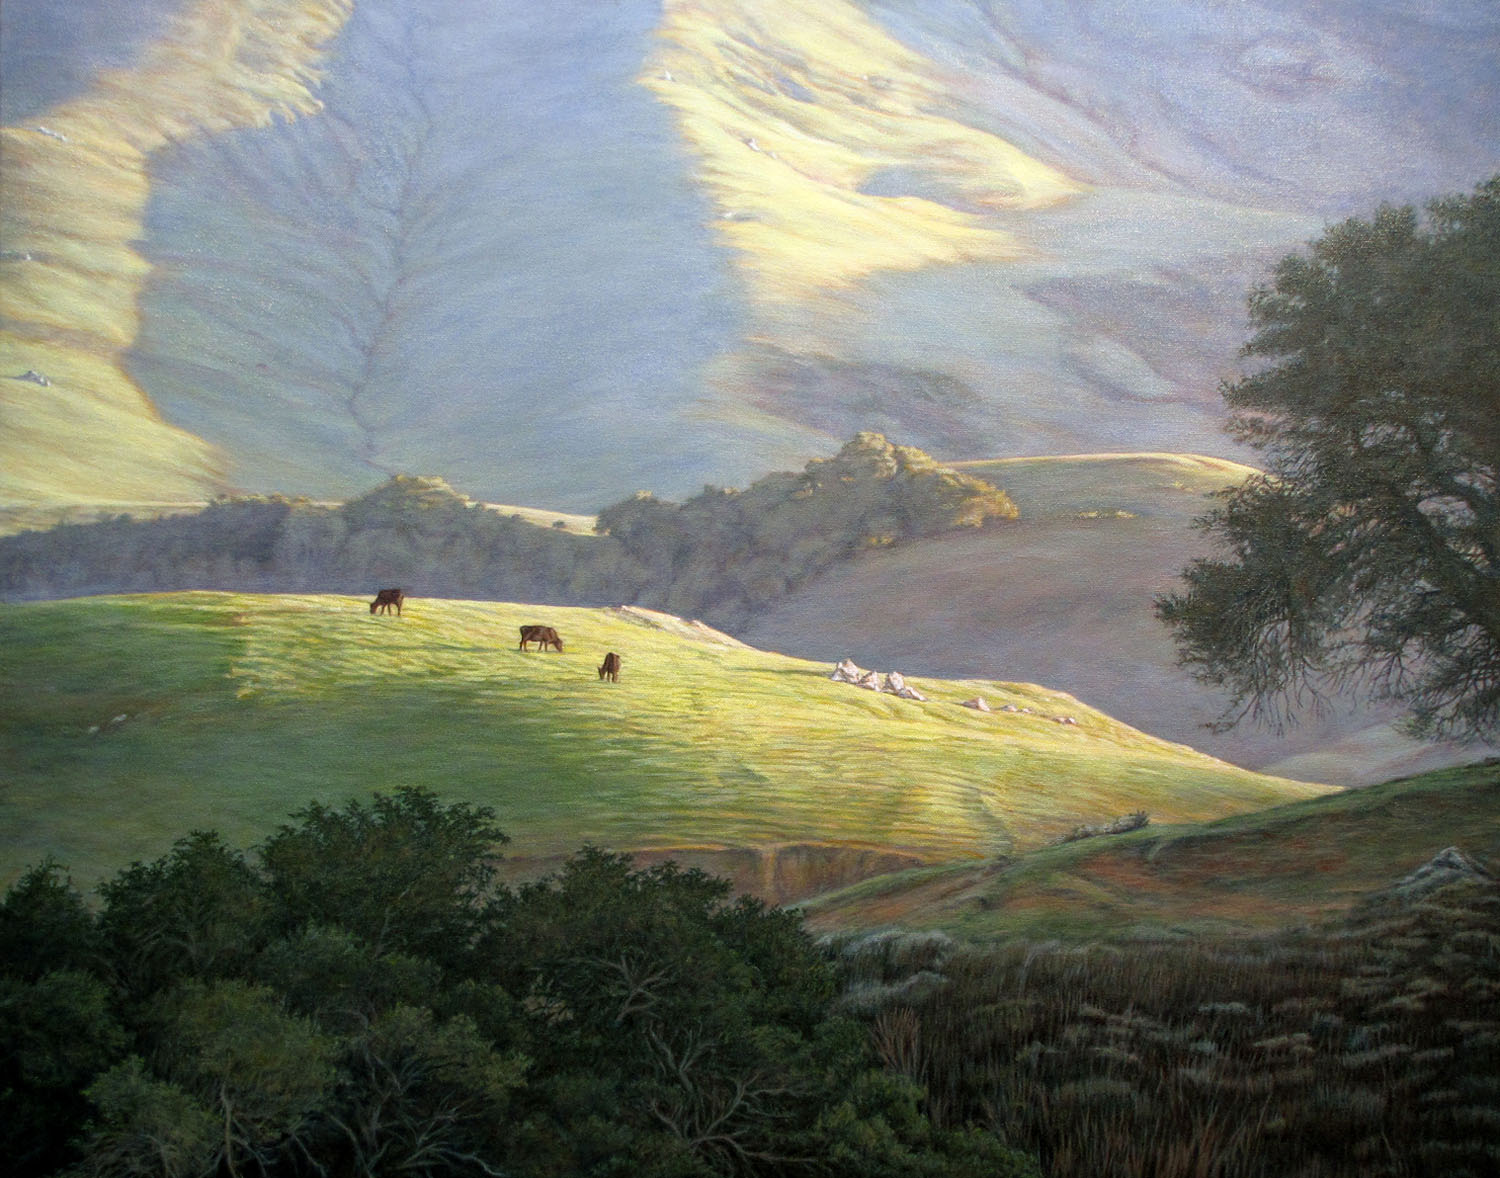 """""""High Pasture""""   by Dennis Curry    The hills of the Santa Lucia range on the coast of central California turn green with the winter rains providing fresh grass for the local cattle and beautiful vistas along highway 46 west."""